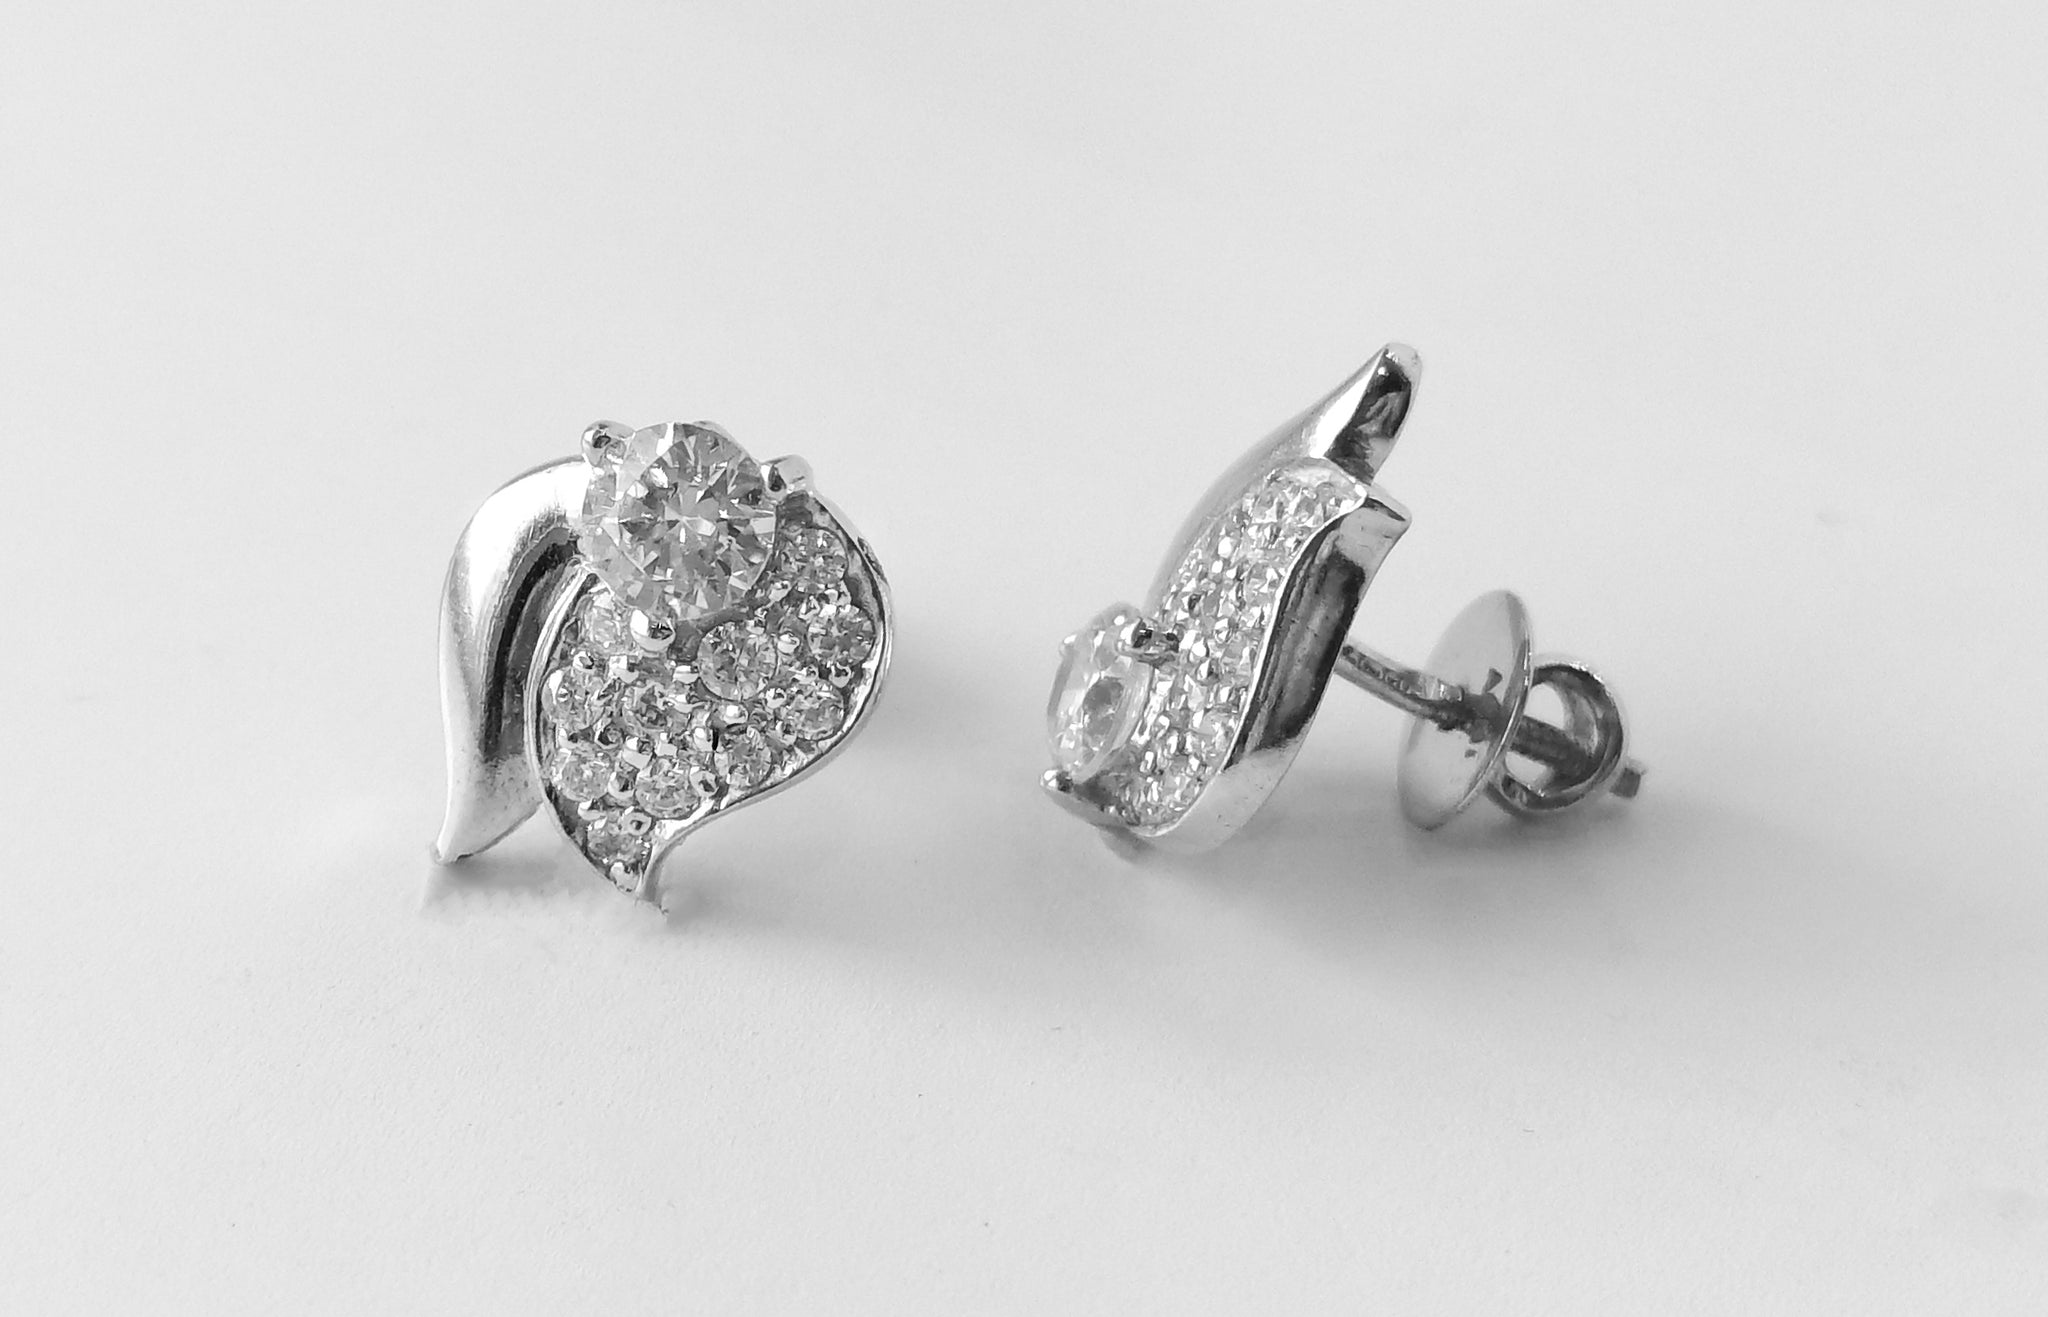 18ct White Gold Stud Earrings set with Cubic Zirconias (4.4g) E-3238